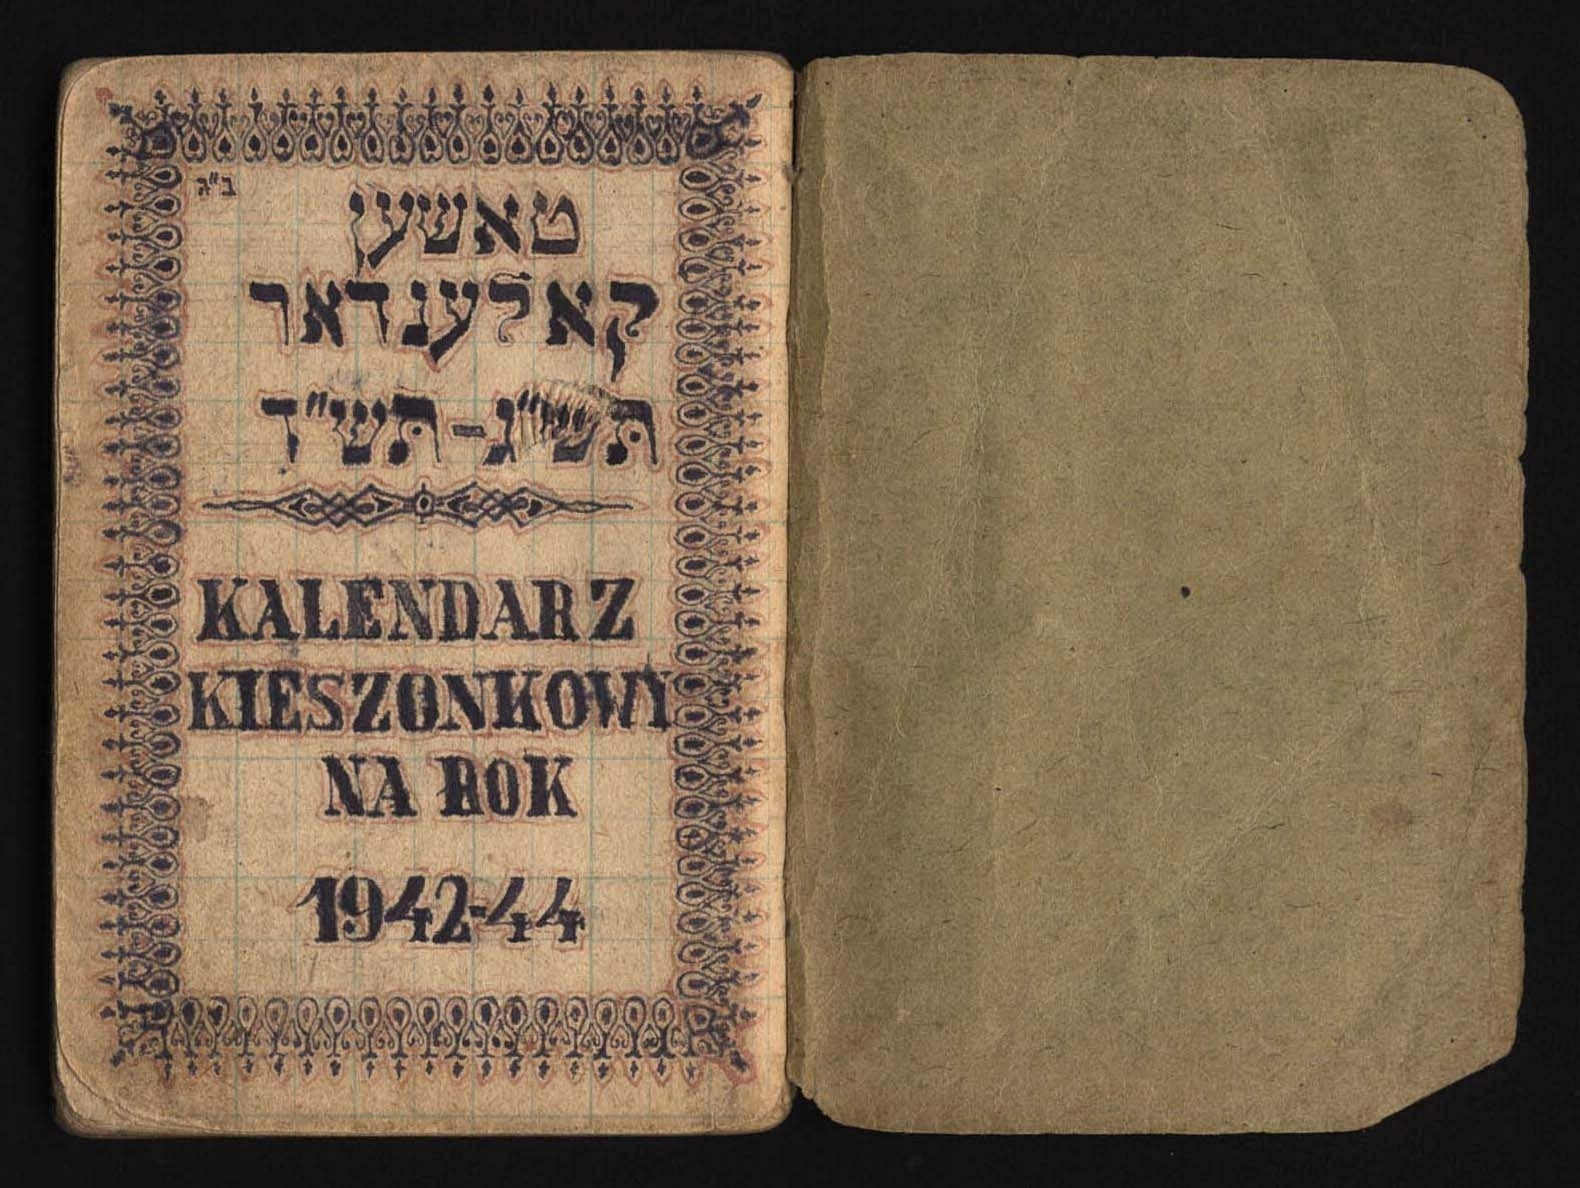 <p>Title page of Rabbi Shlomo Yosef Scheiner's calendar for the Jewish year 5703, created while he was in hiding in wartime Poland in&nbsp;1943.</p>